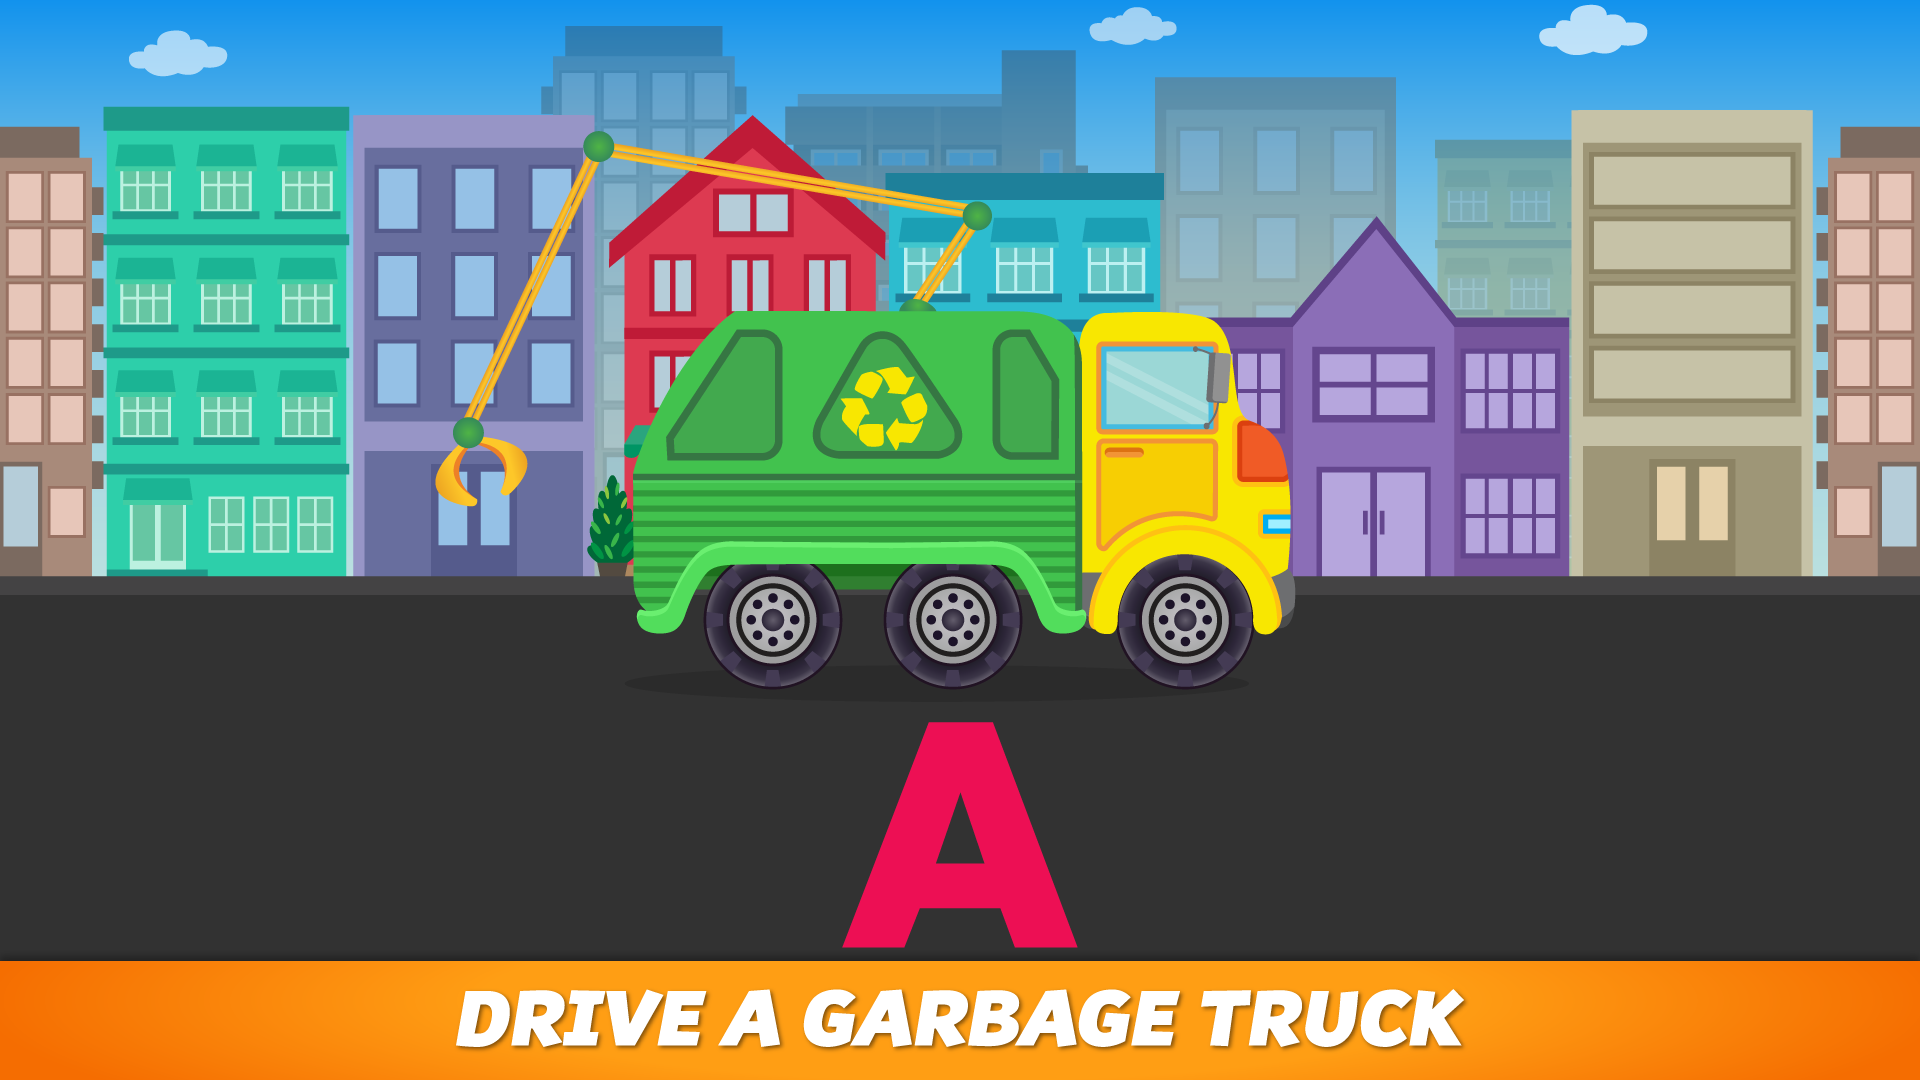 ABC Garbage Truck - Alphabet Fun Game for Preschool Toddler Kids Learning ABCs and Love Trucks and Things That Go screenshot 1